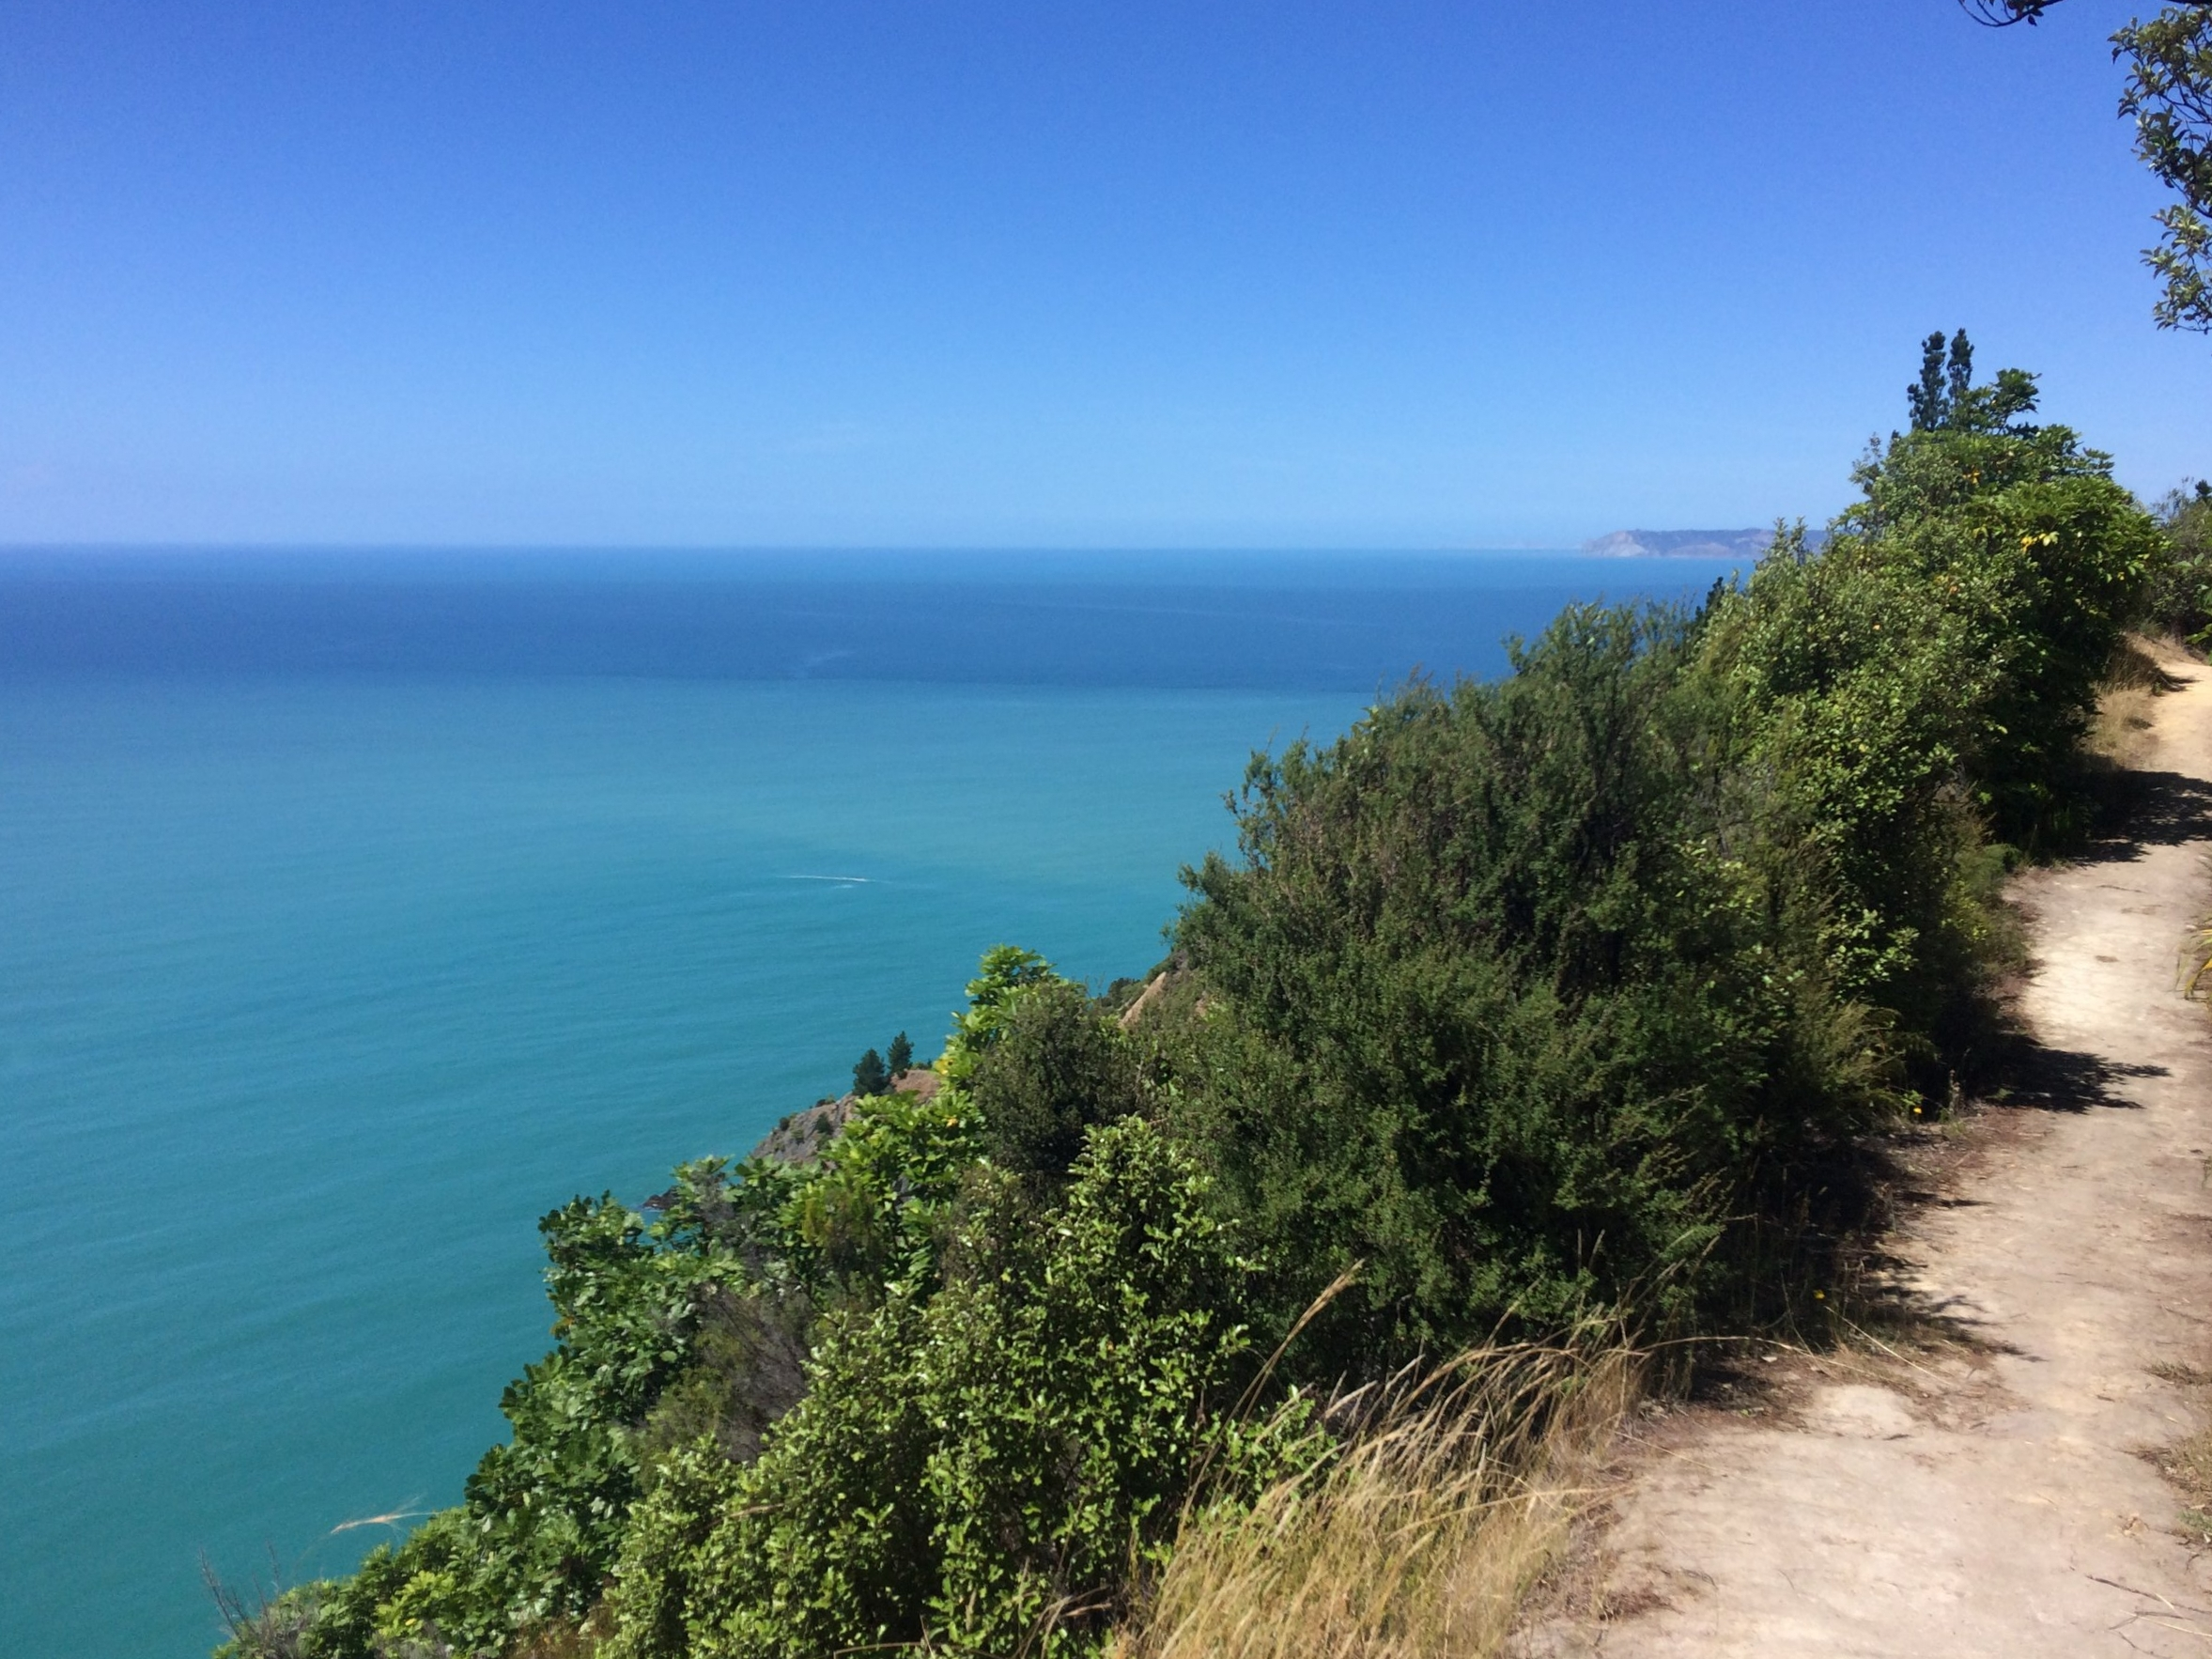 Views from the trail run portion of White's Bay